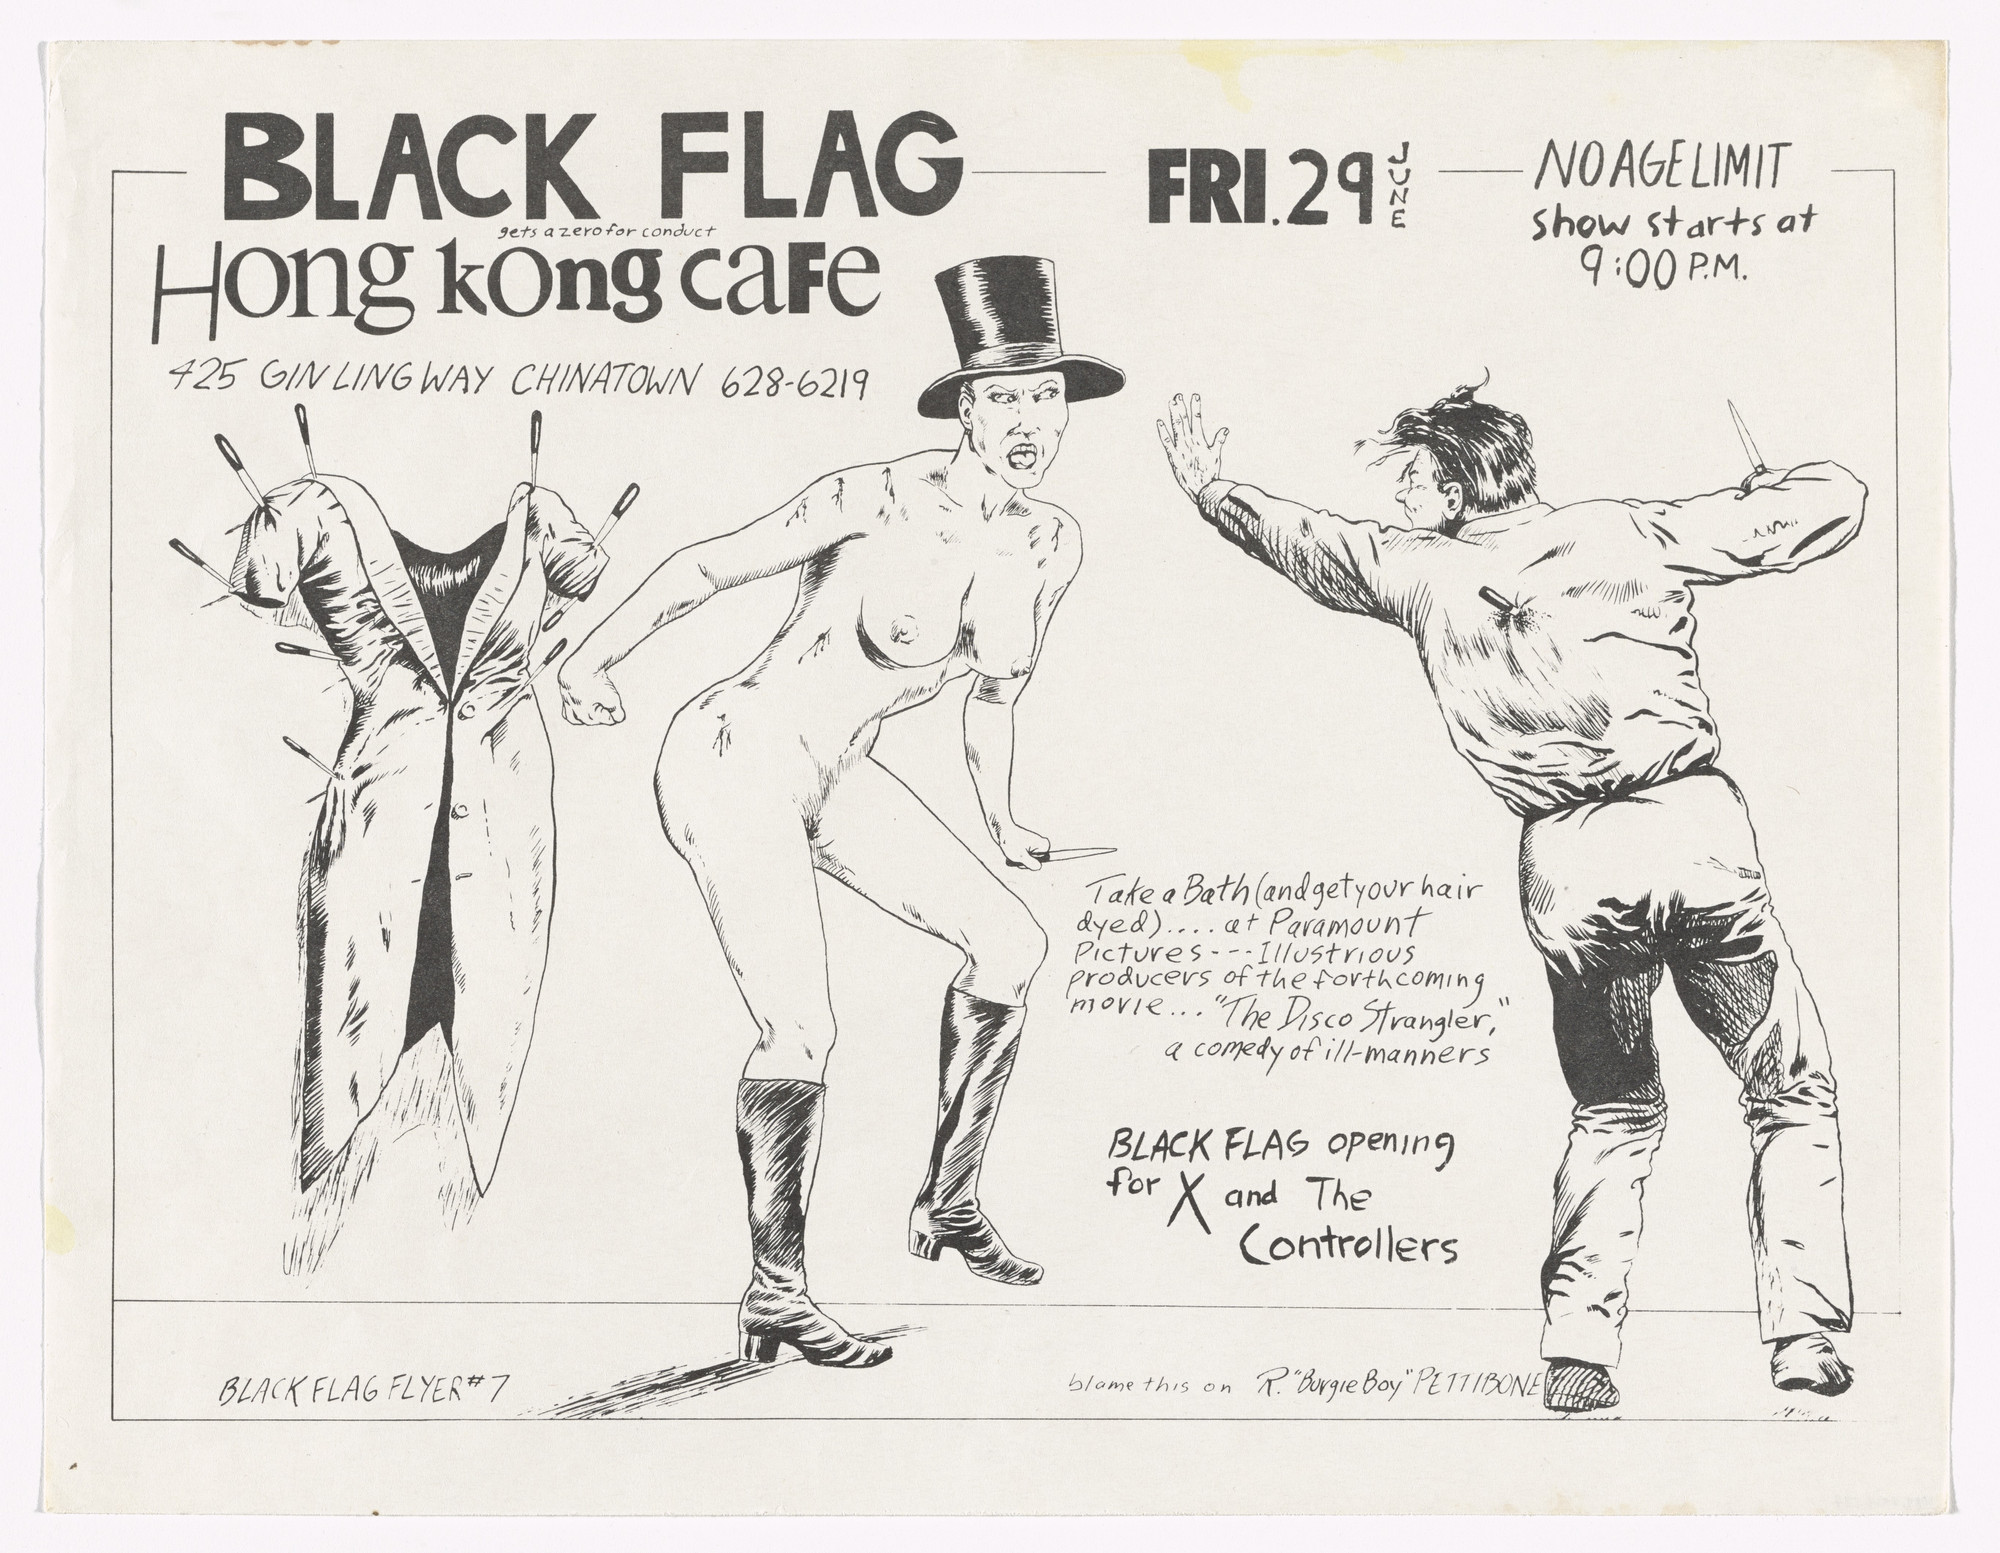 Raymond Pettibon. Black Flag at Hong Kong Cafe. June 29, 1979